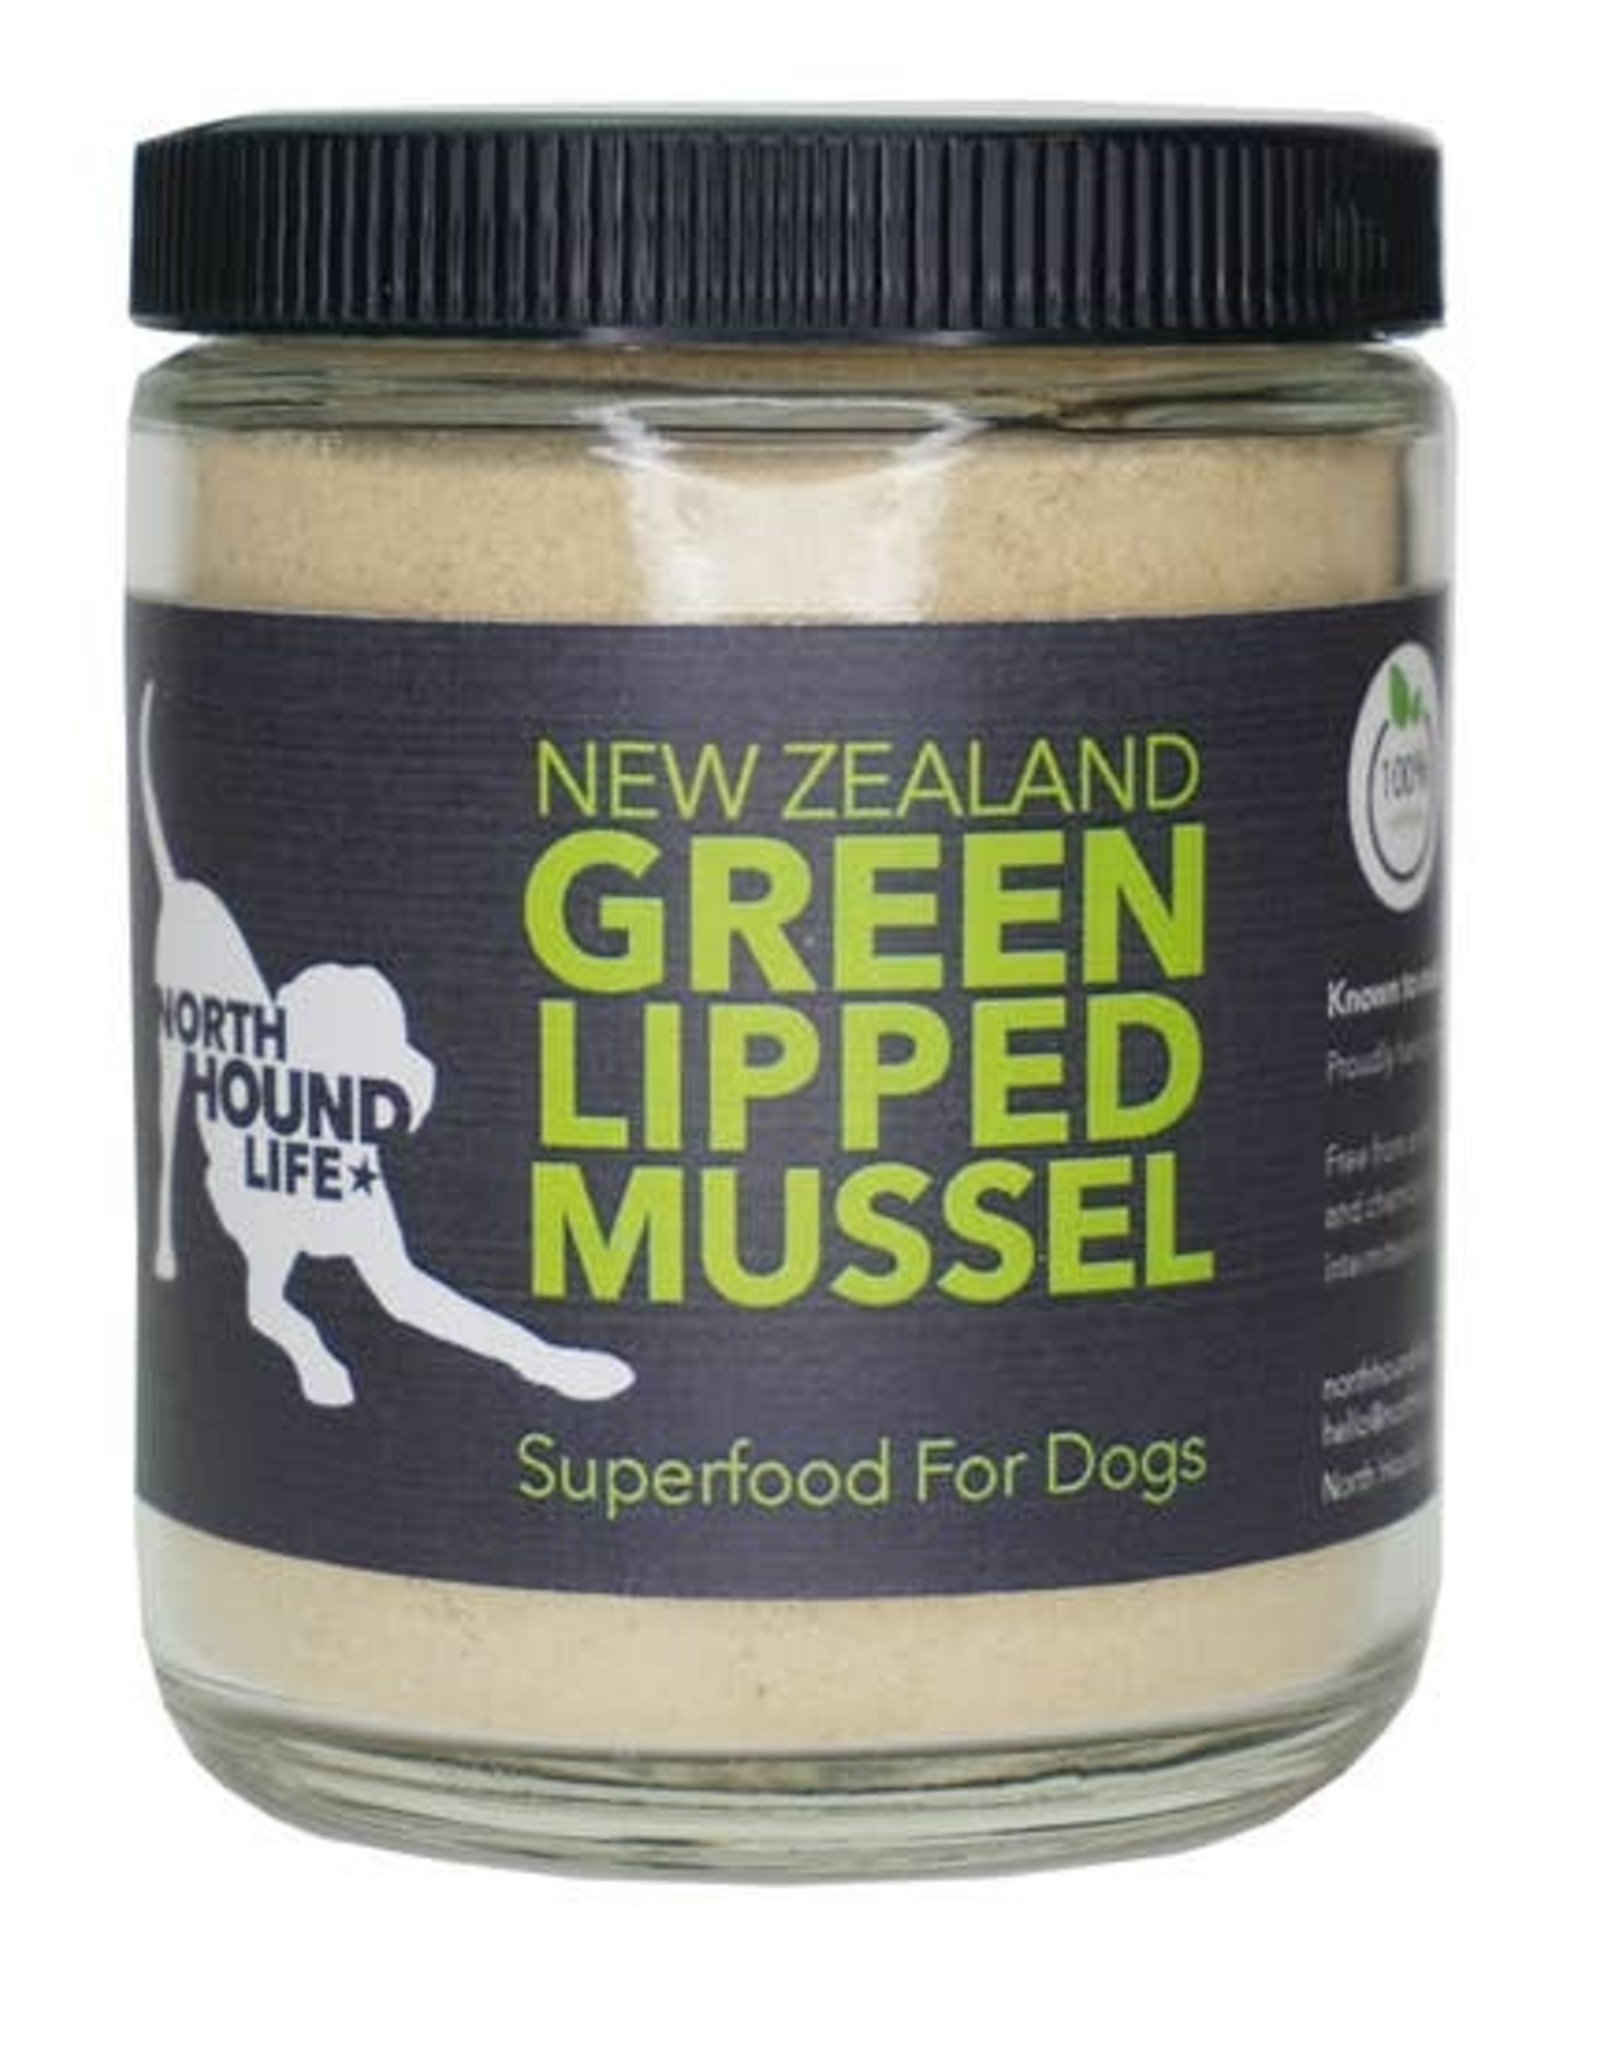 North Hound Life Green Lipped Mussel Powder